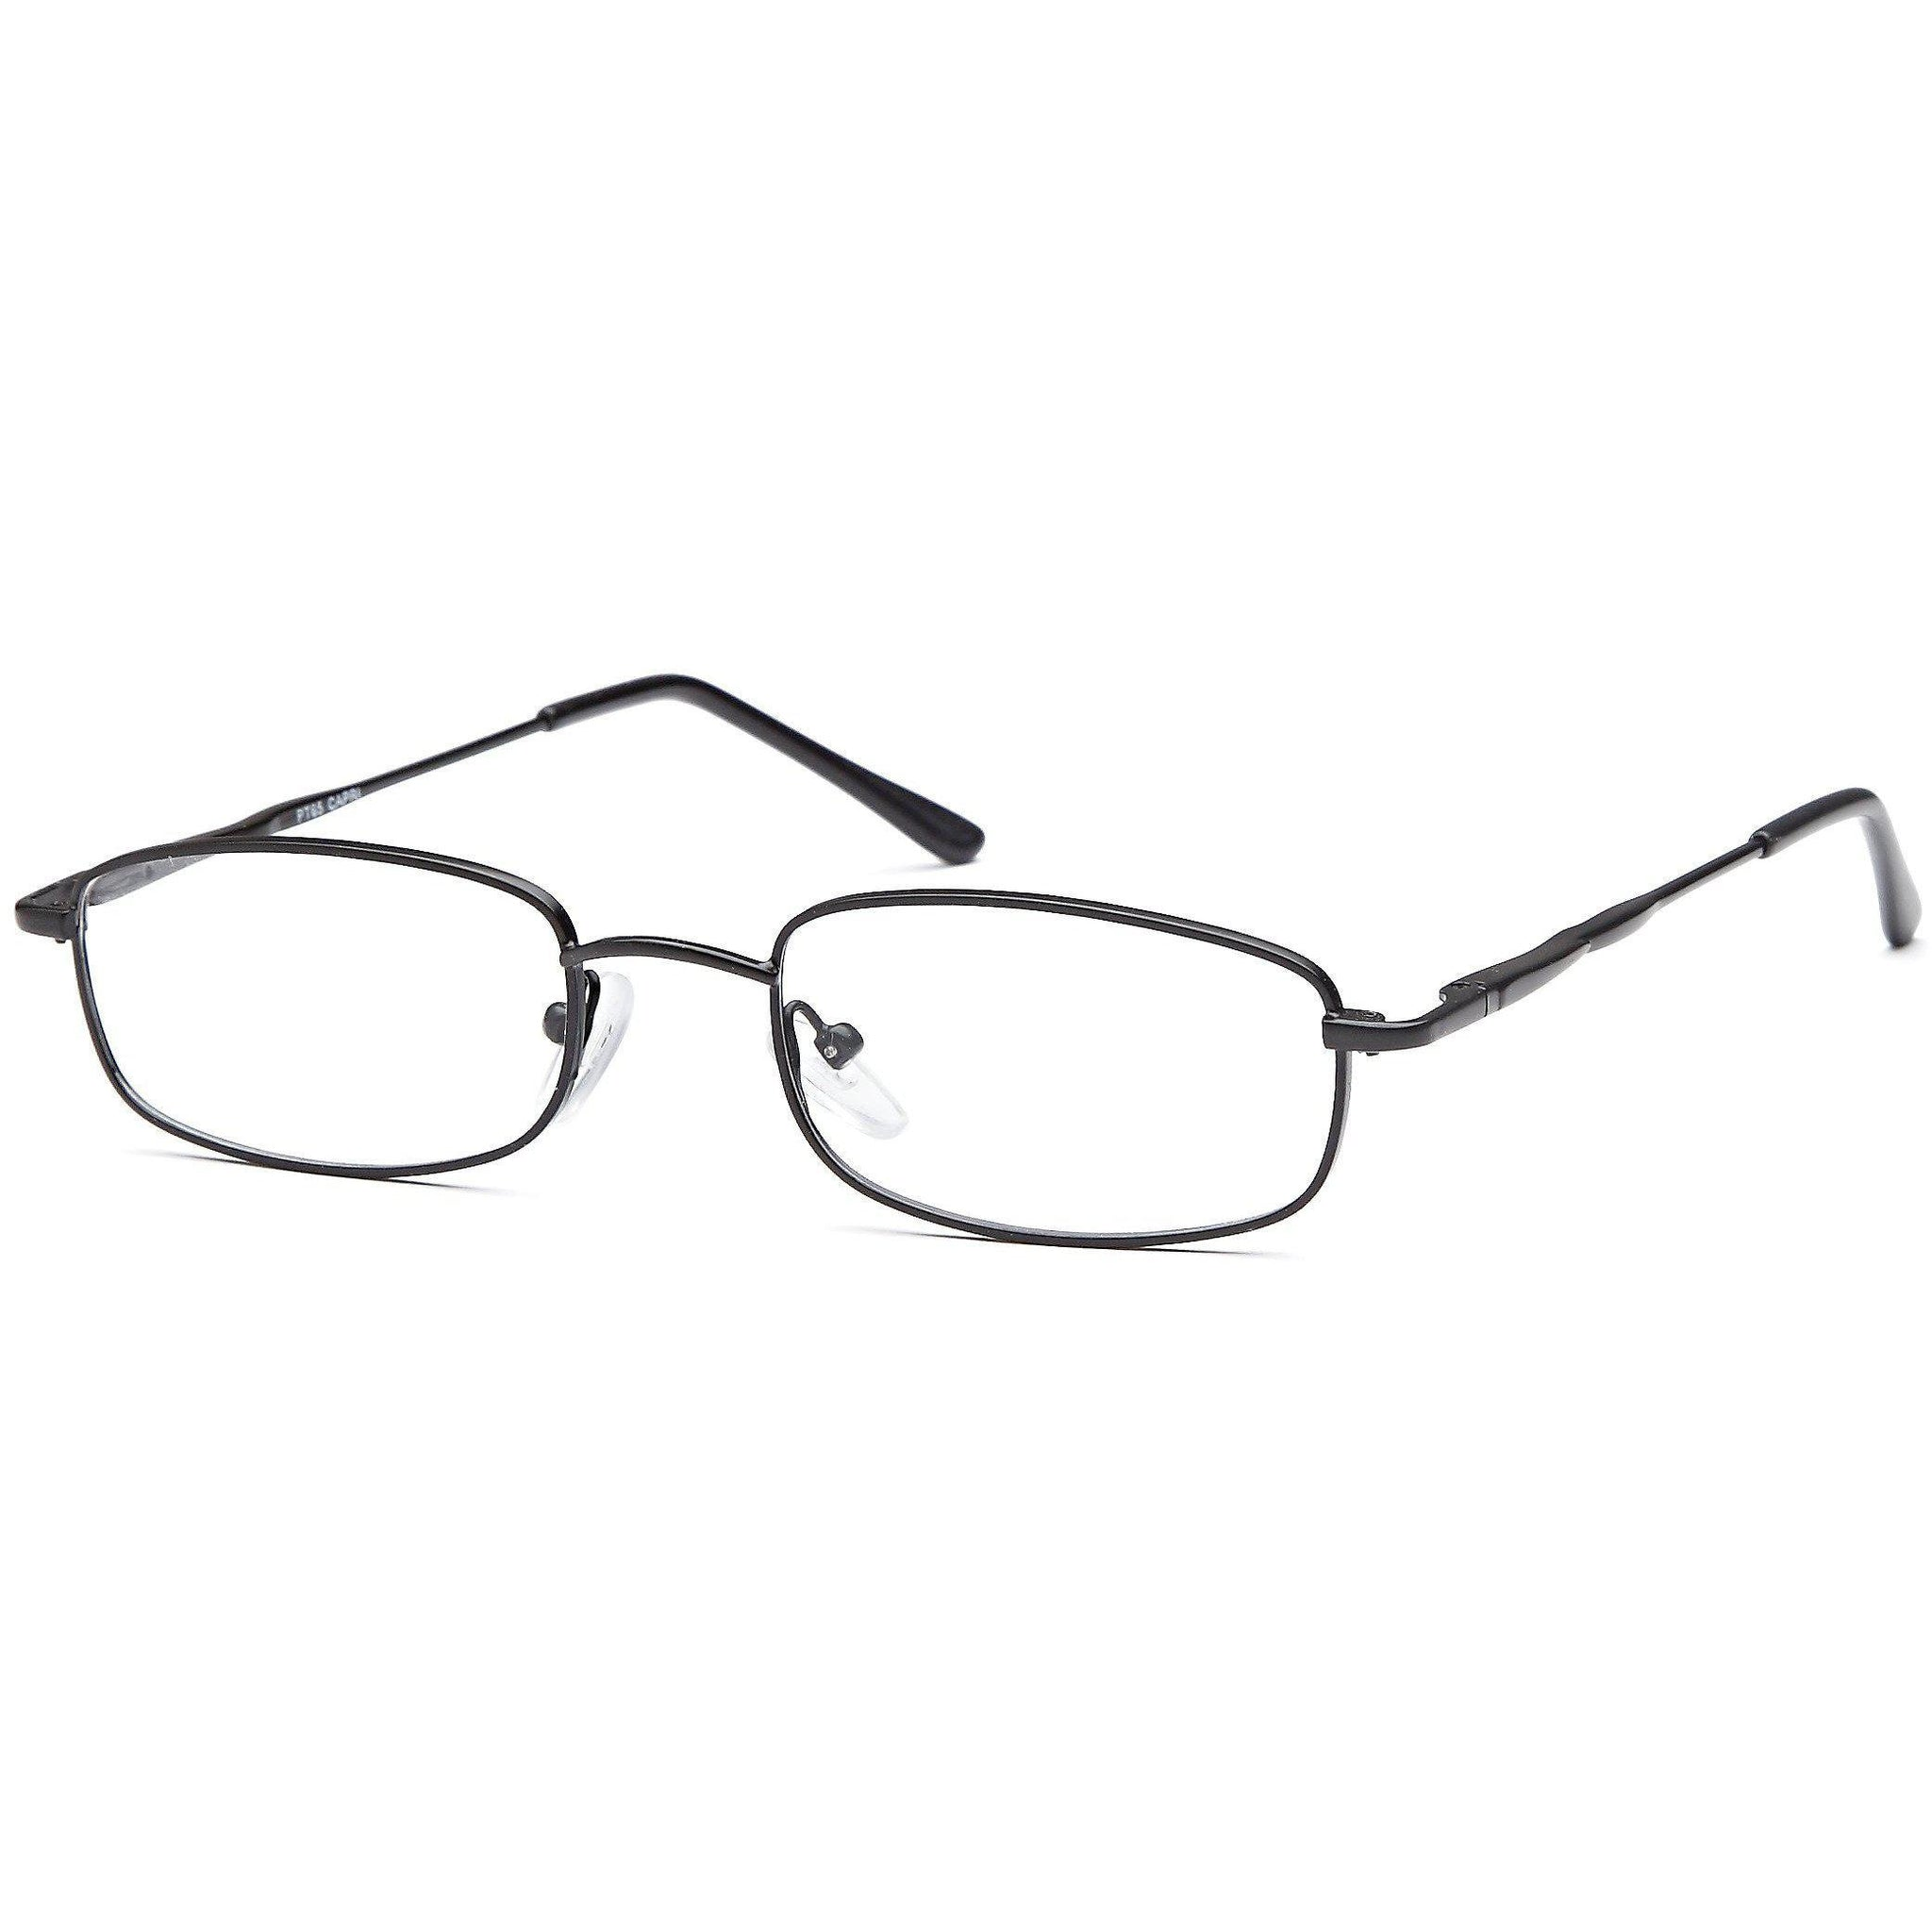 Appletree Prescription Glasses PT 65 Eyeglasses Frame